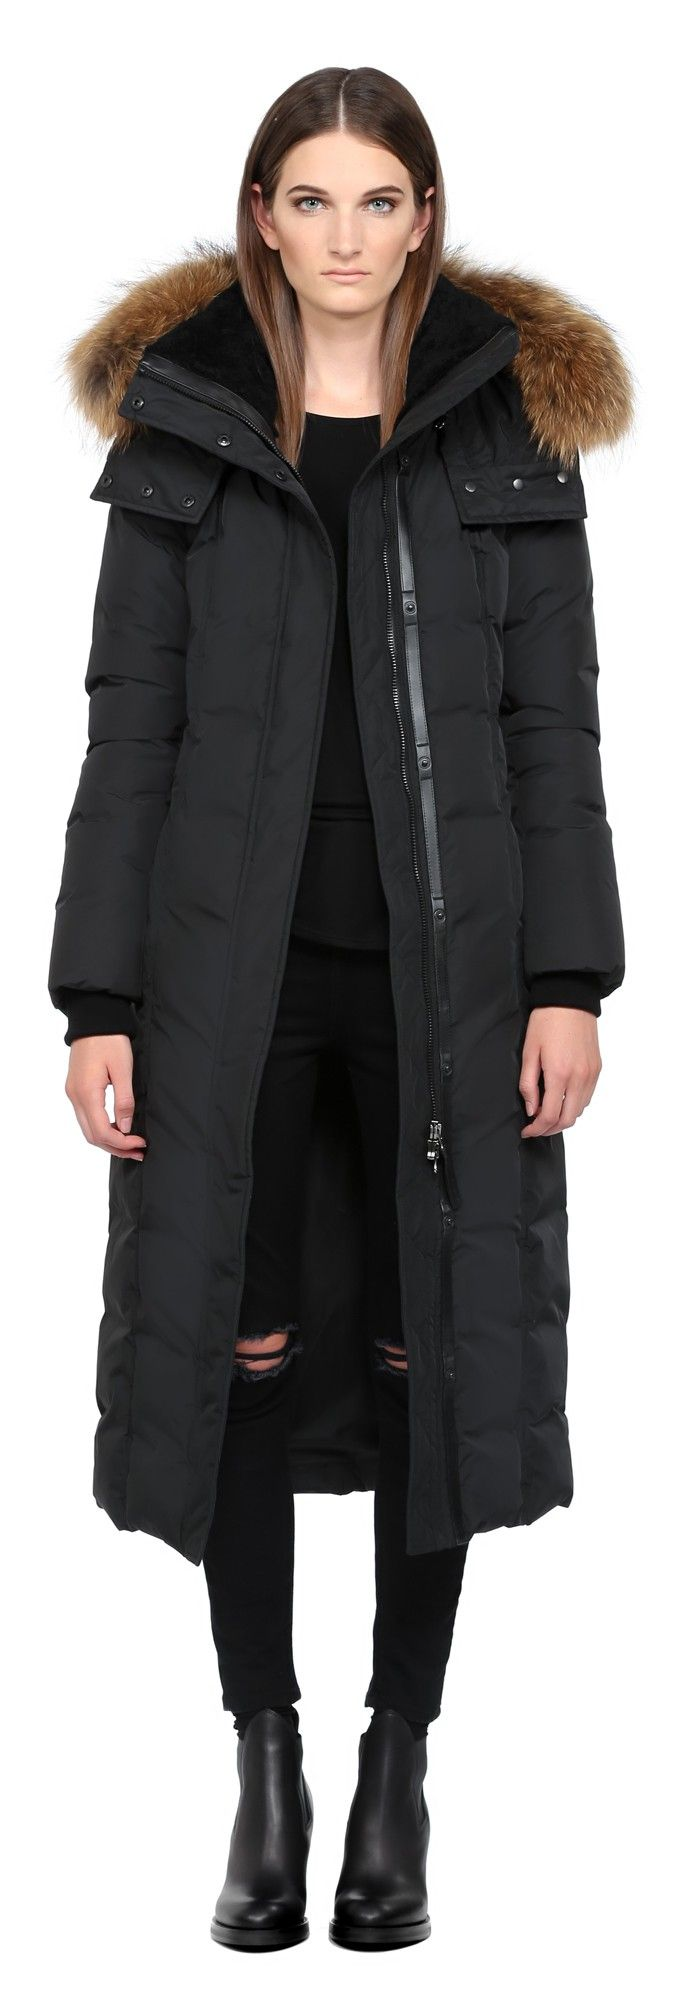 JADA | BLACK LONG DOWN COAT WITH FUR HOOD FOR WOMEN | MACKAGE